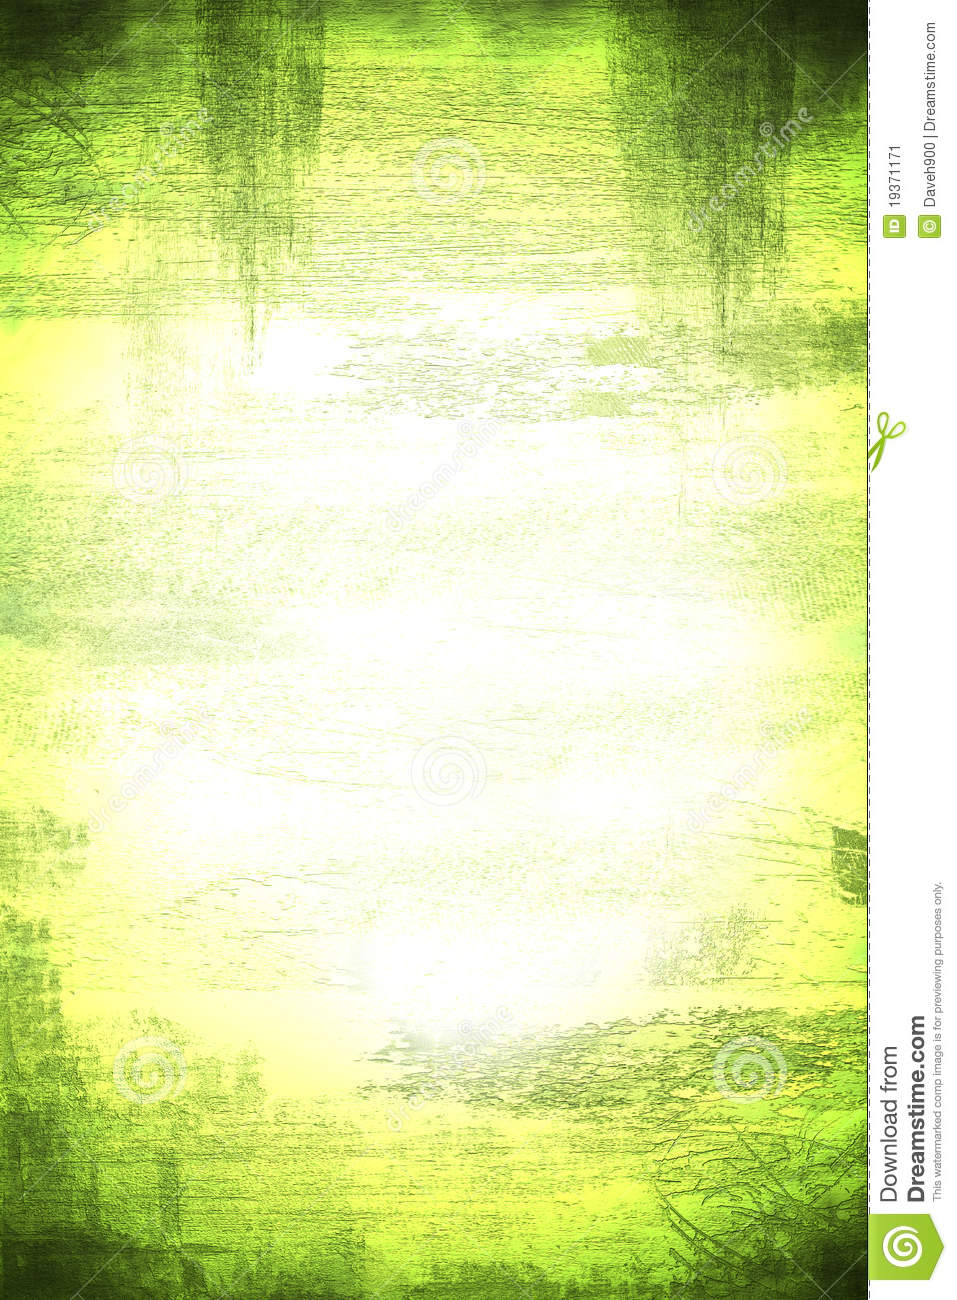 This green background texture is great for poster designs and more.